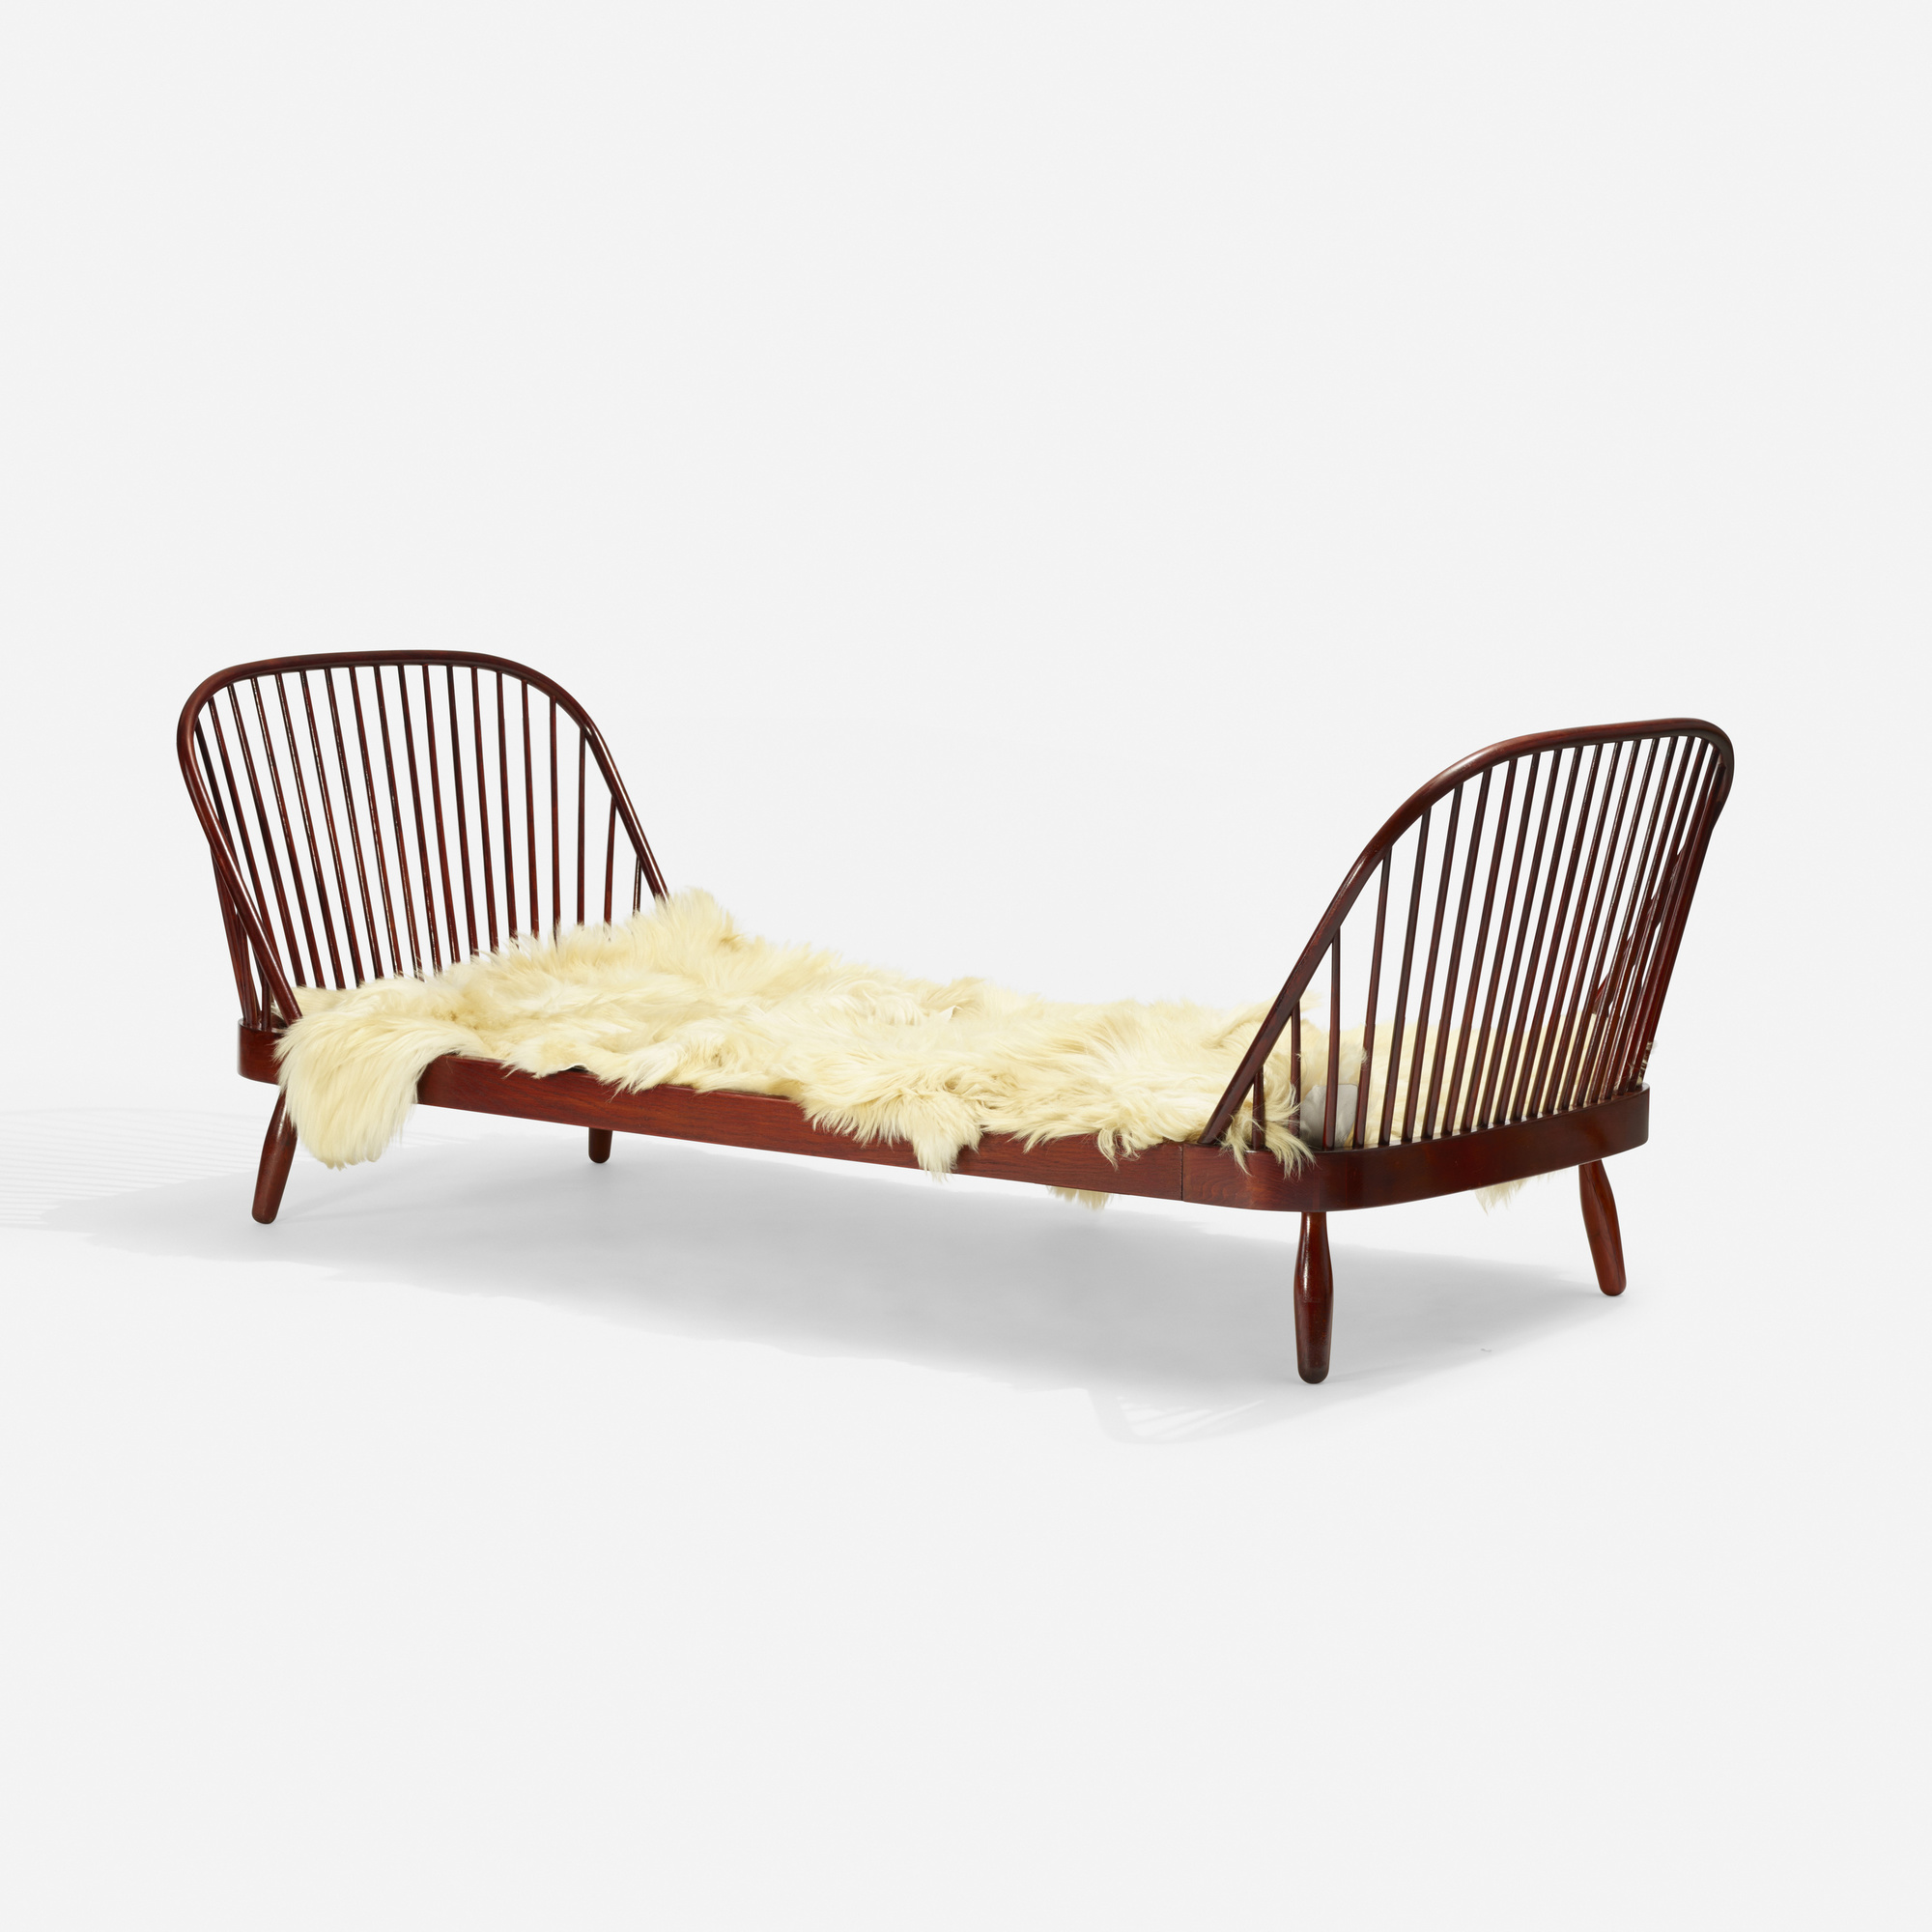 170: Frode Holm / daybed (1 of 3)